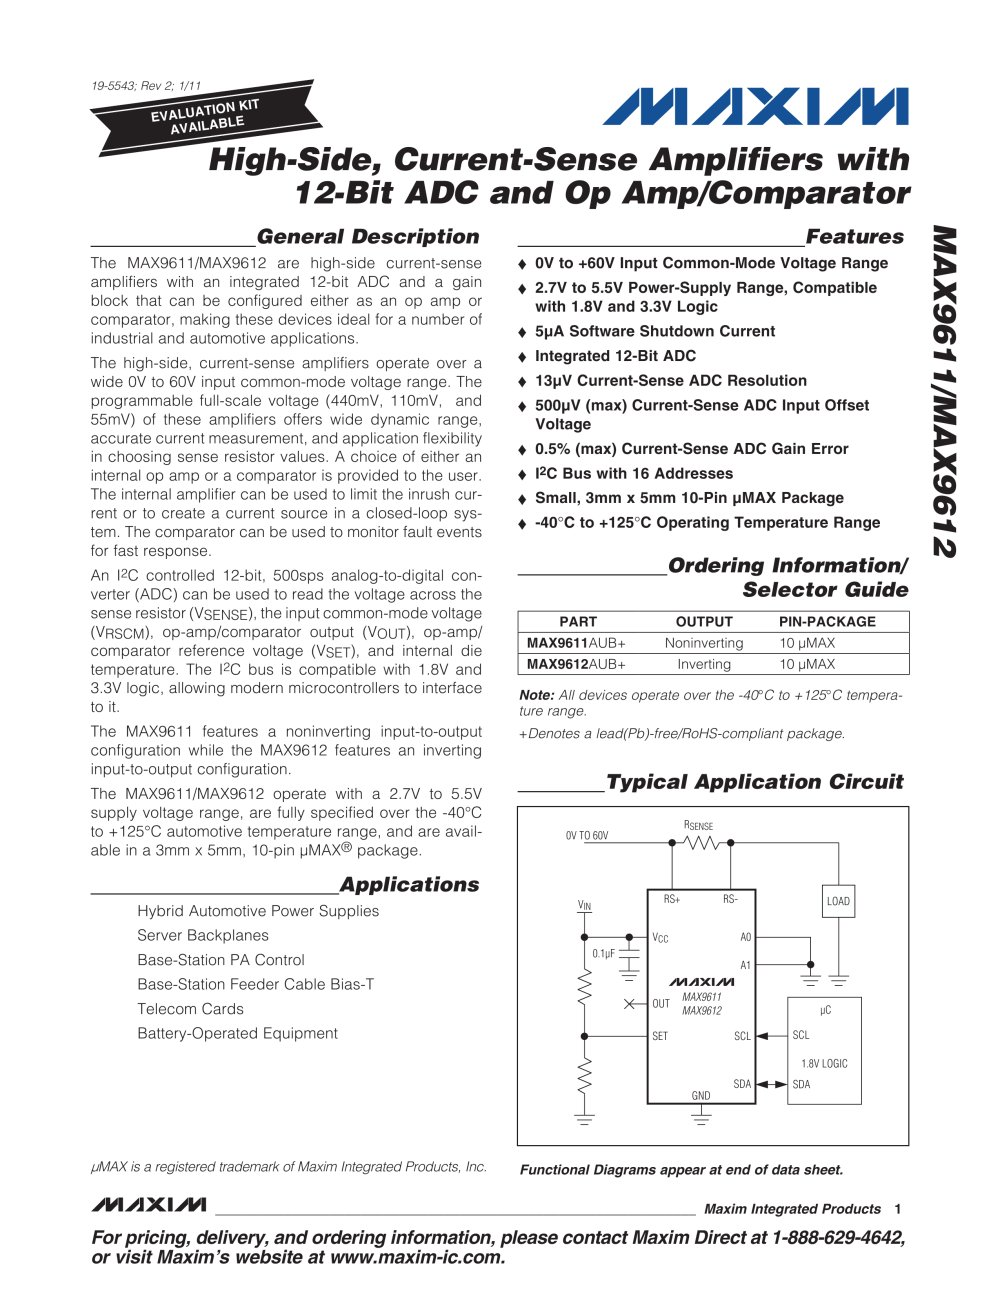 High Side Current Sense Amplifiers With 12 Bit Adc And Op Amp Links Voltage Comparator Circuit Max9611 Max9612 1 20 Pages